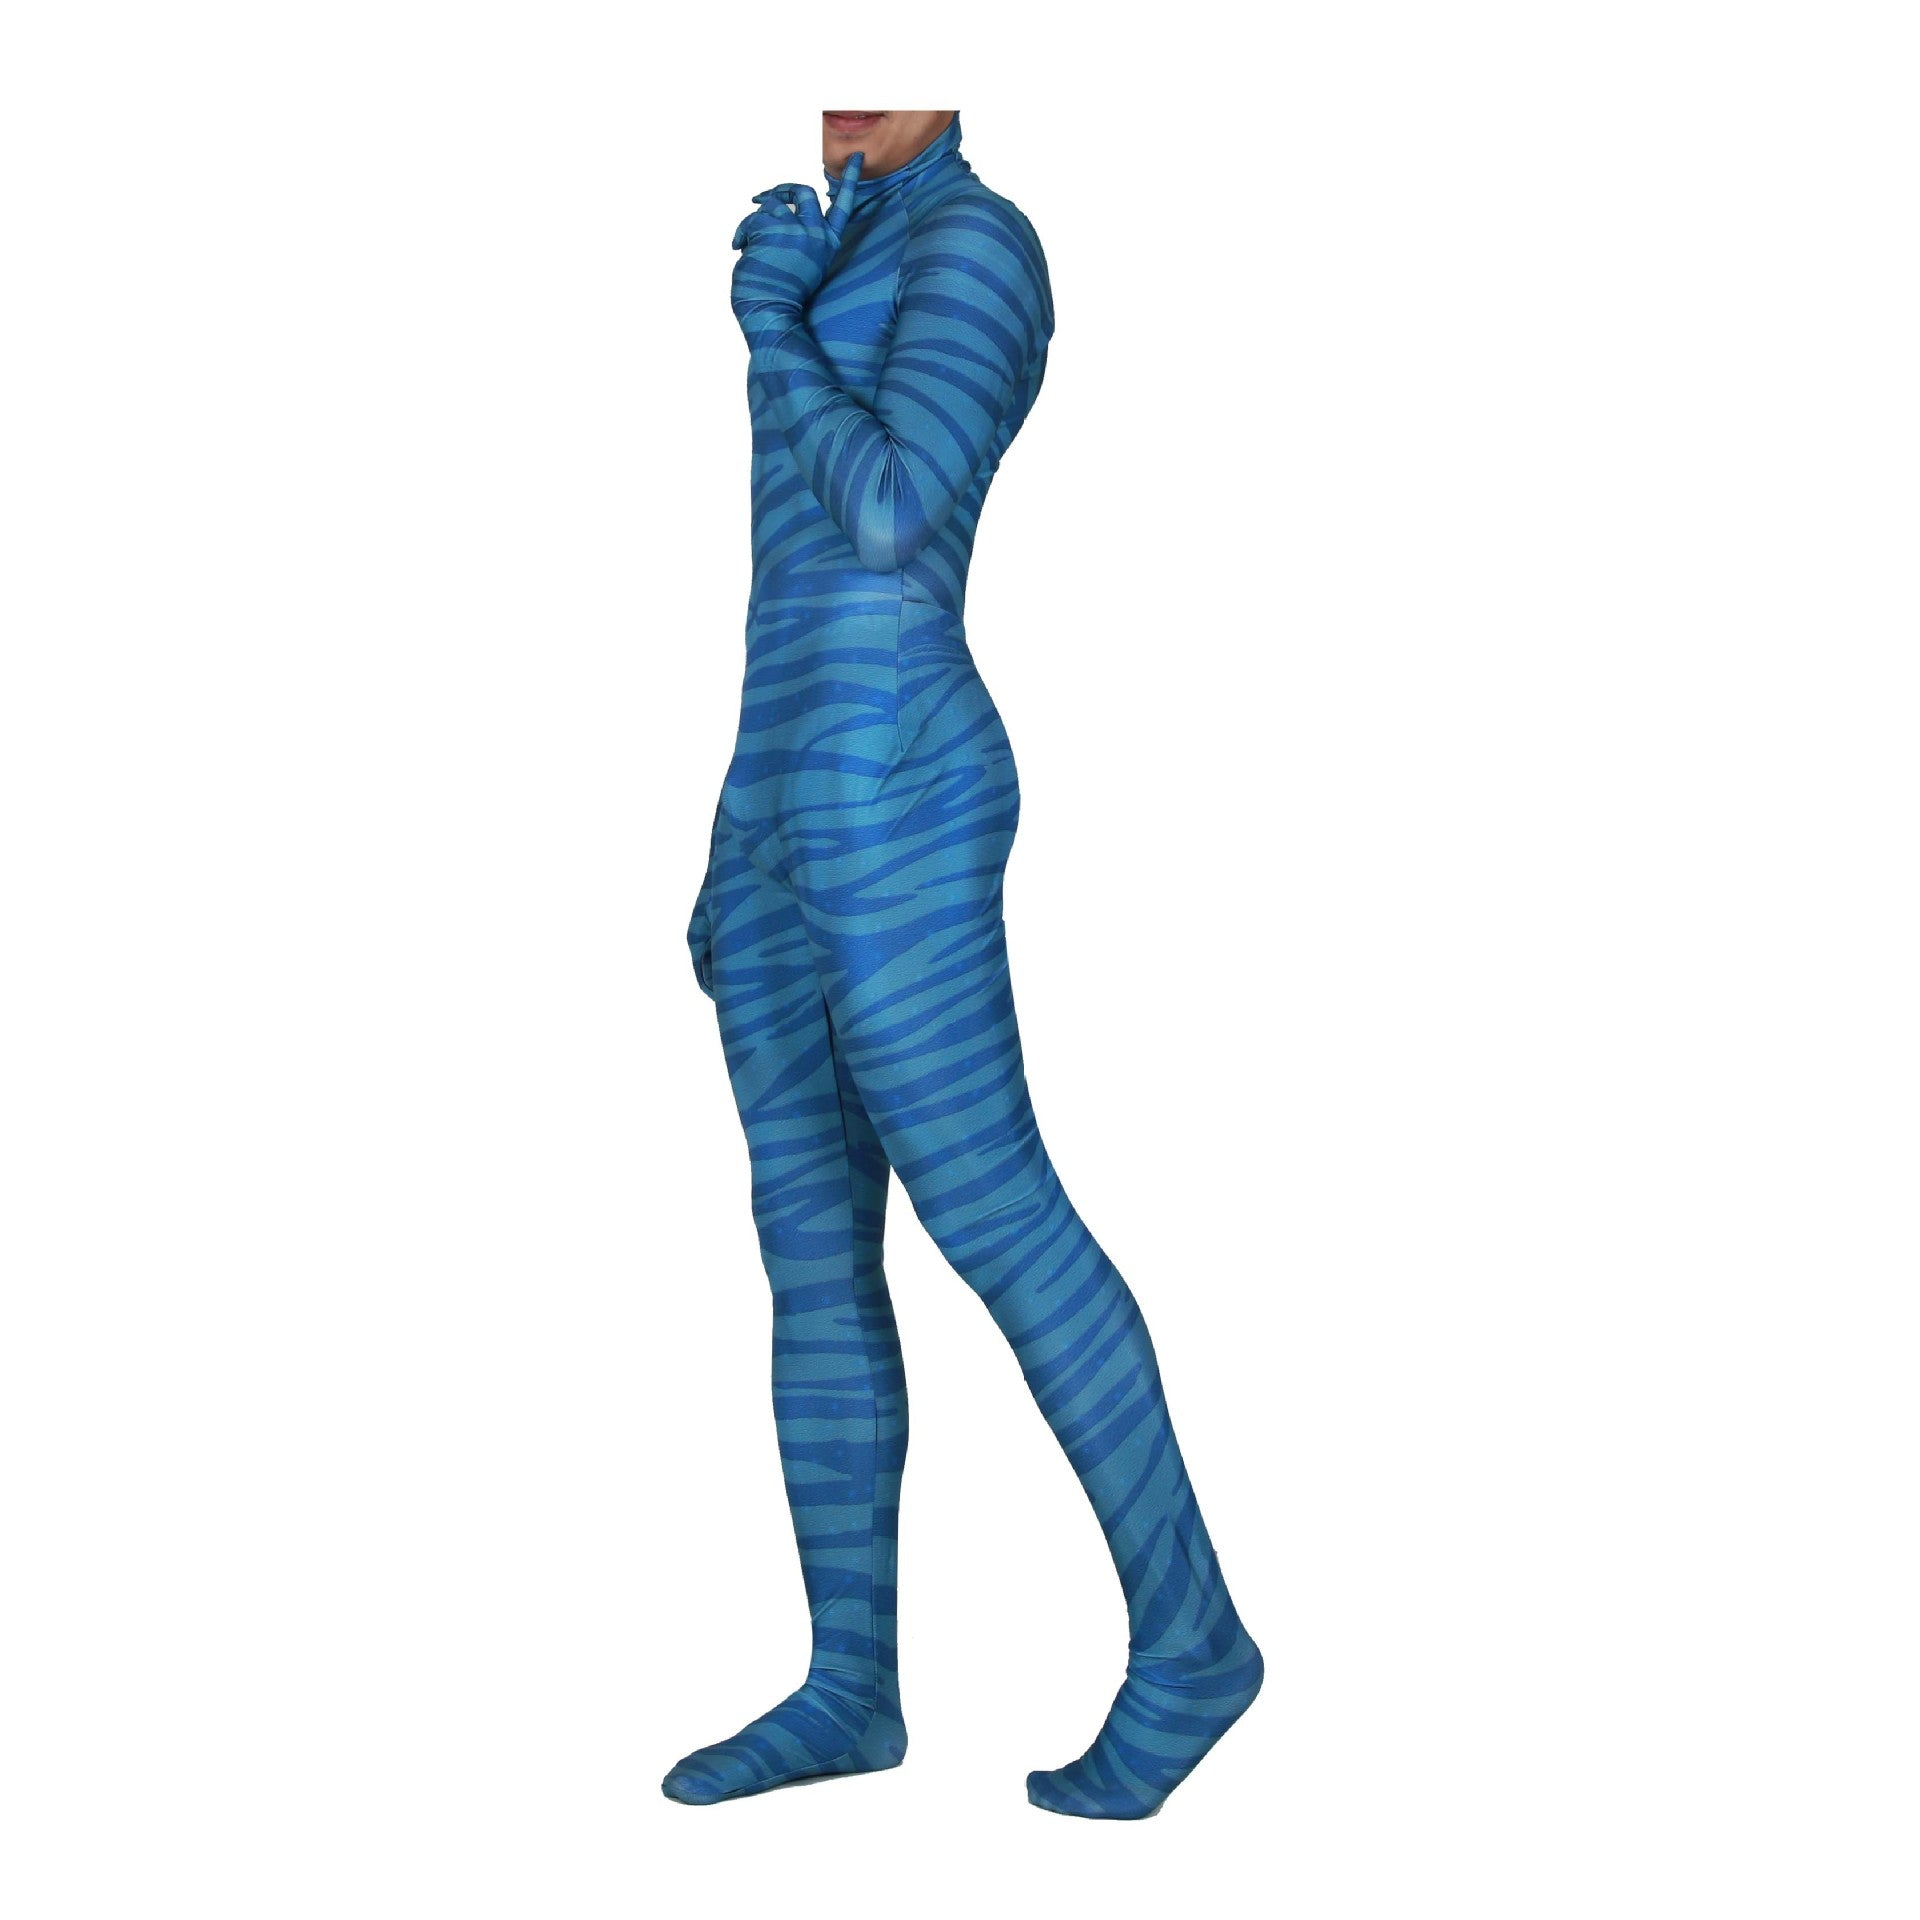 Kids/Adults Avatar Pandora's Skin Jumpsuit Halloween Cosplay Costume